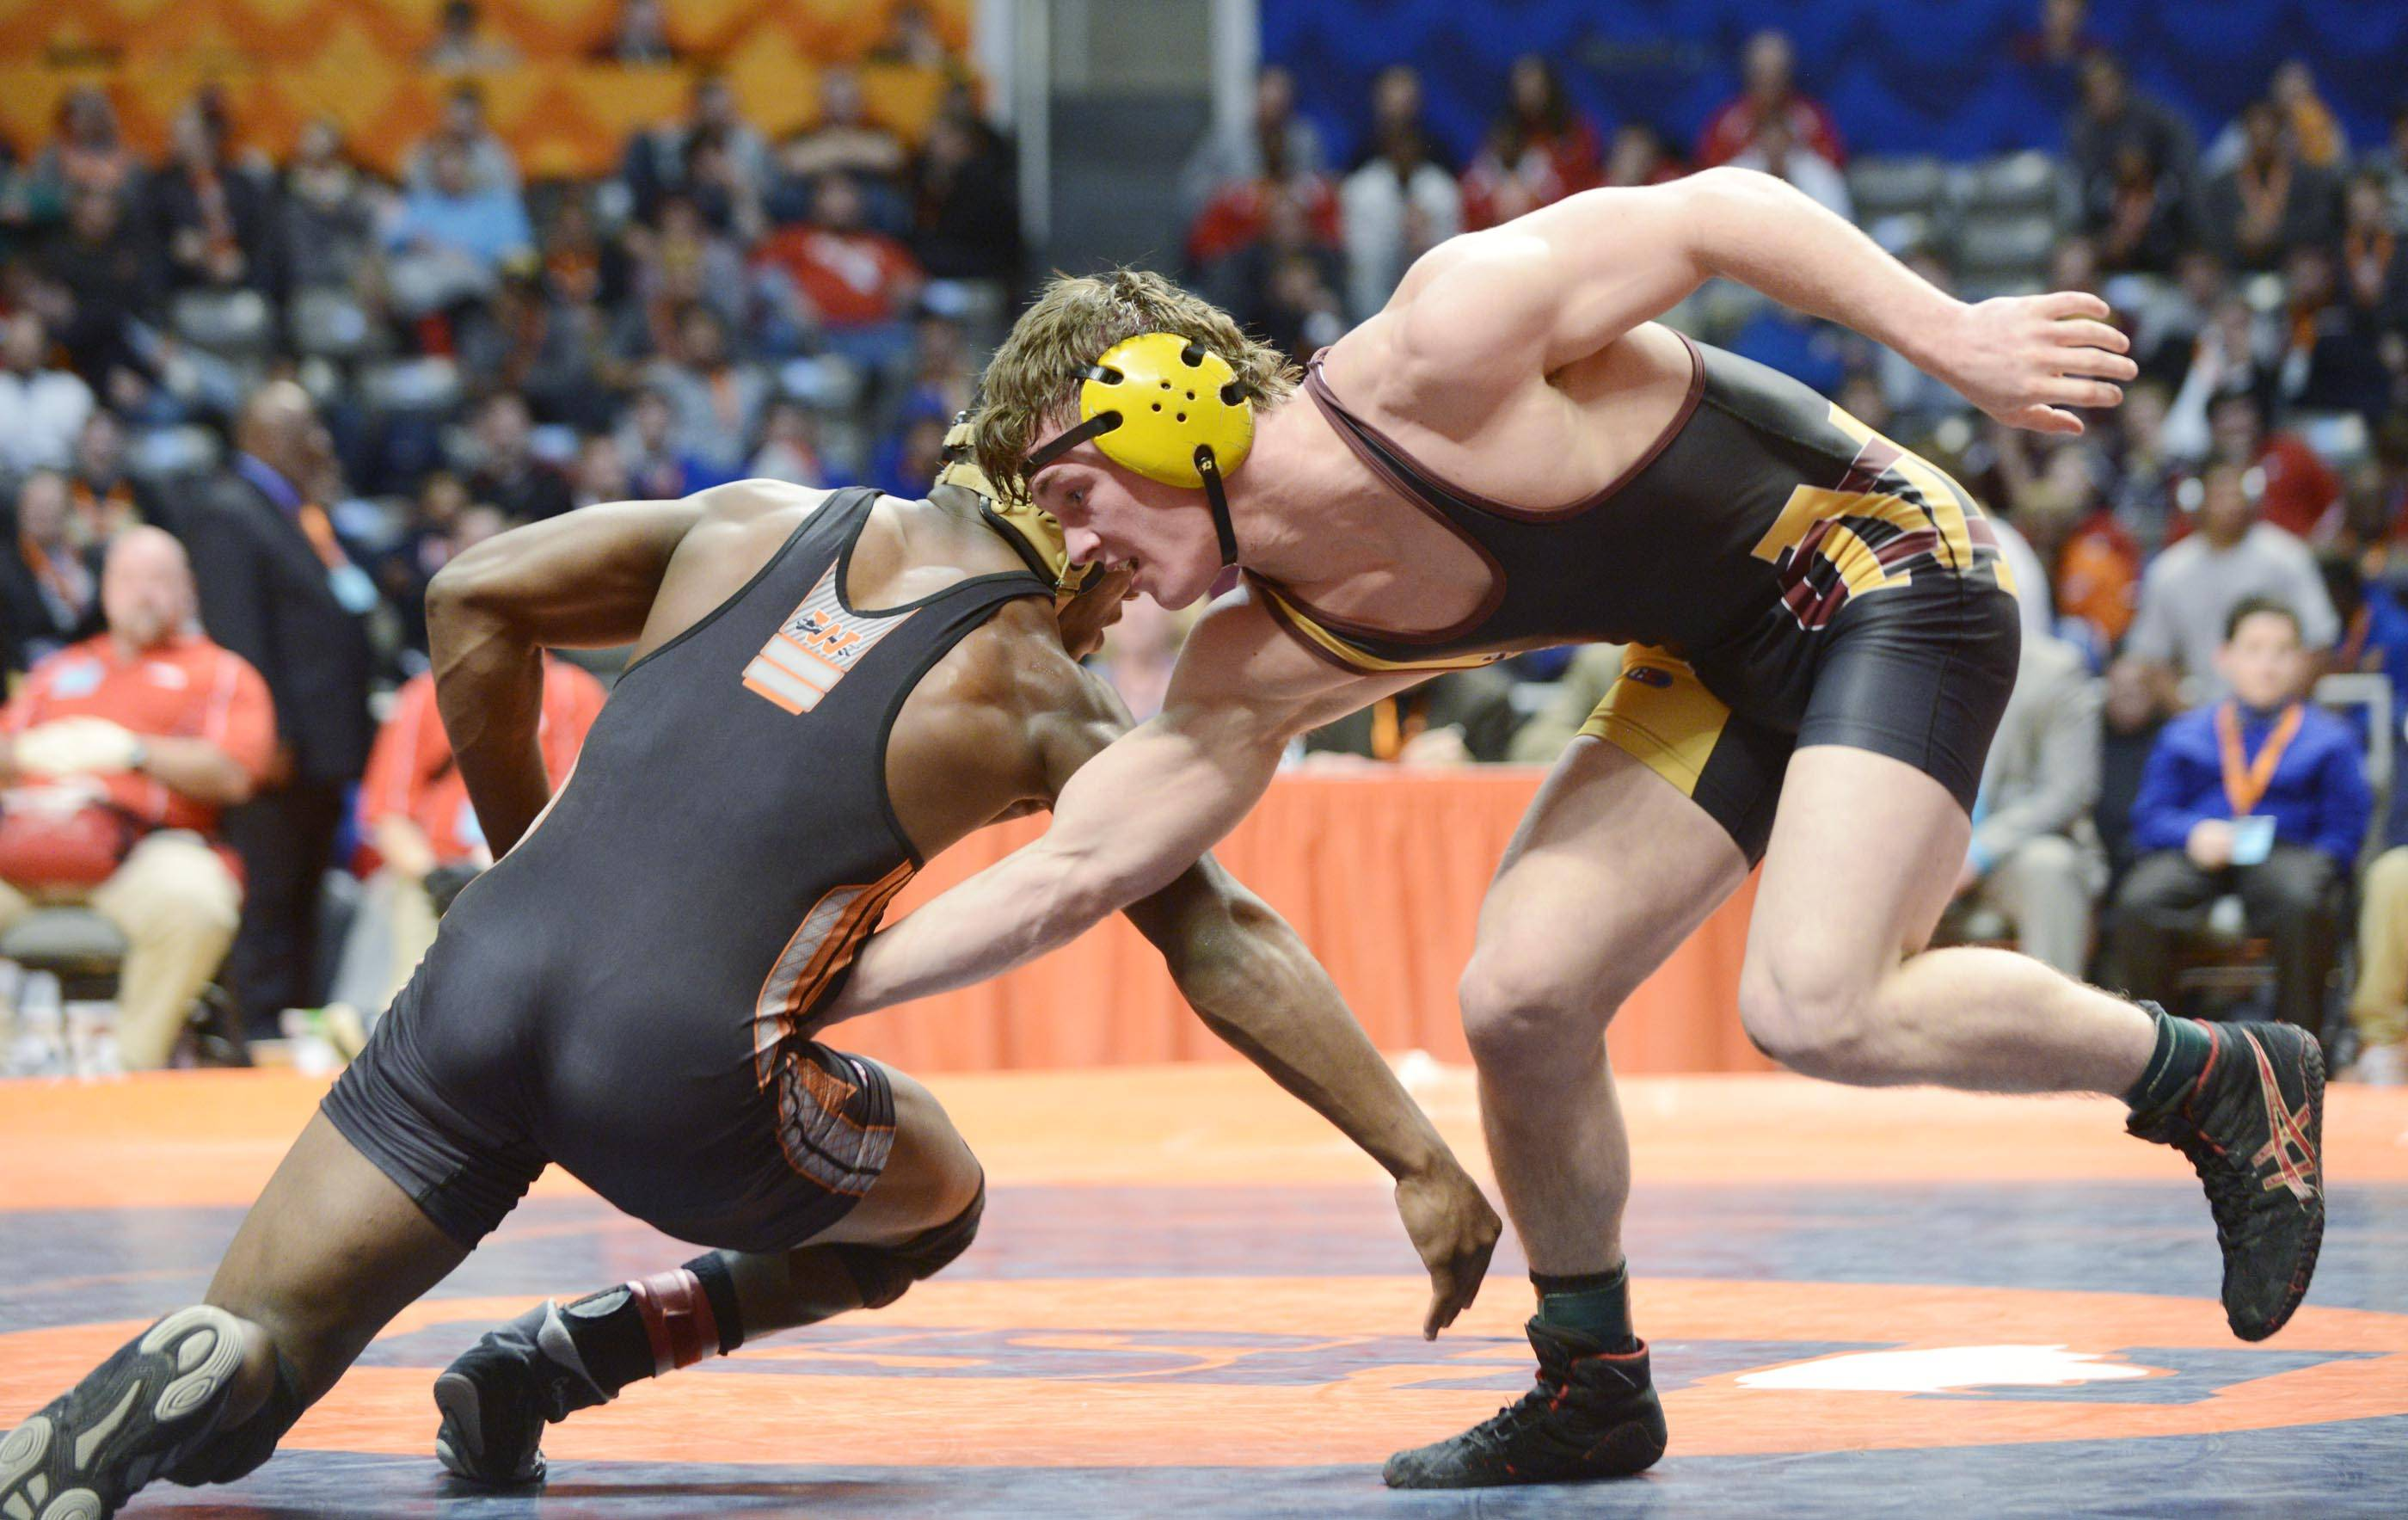 Luke Fortuna of Lombard Montini Catholic High School competes against Randy Meneweather of Washington High School Saturday in the 152-pound weight class championship match of the wrestling IHSA Class 2A state tournament at State Farm Center in Champaign.